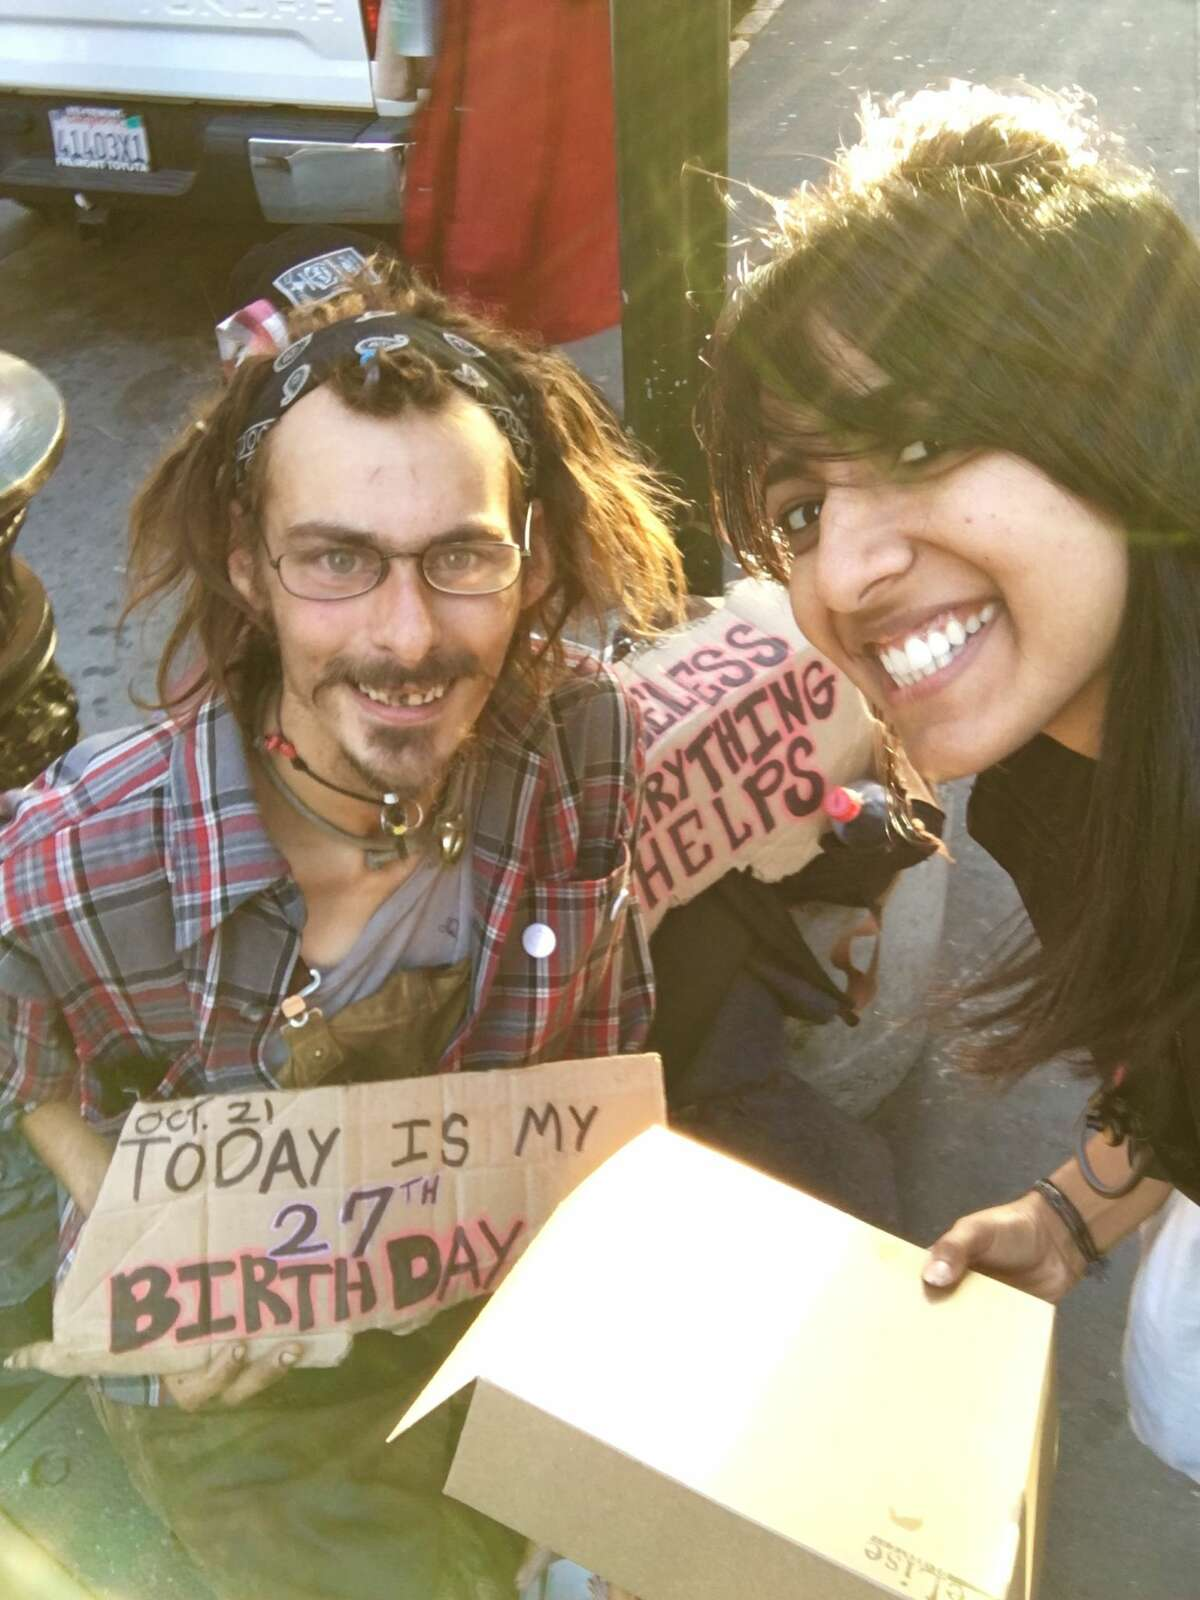 Deepika Phakke connects with a man living on the street in San Francisco. WhenPhakke noticed his sign saying it was his birthday, she gave him a cupcake.